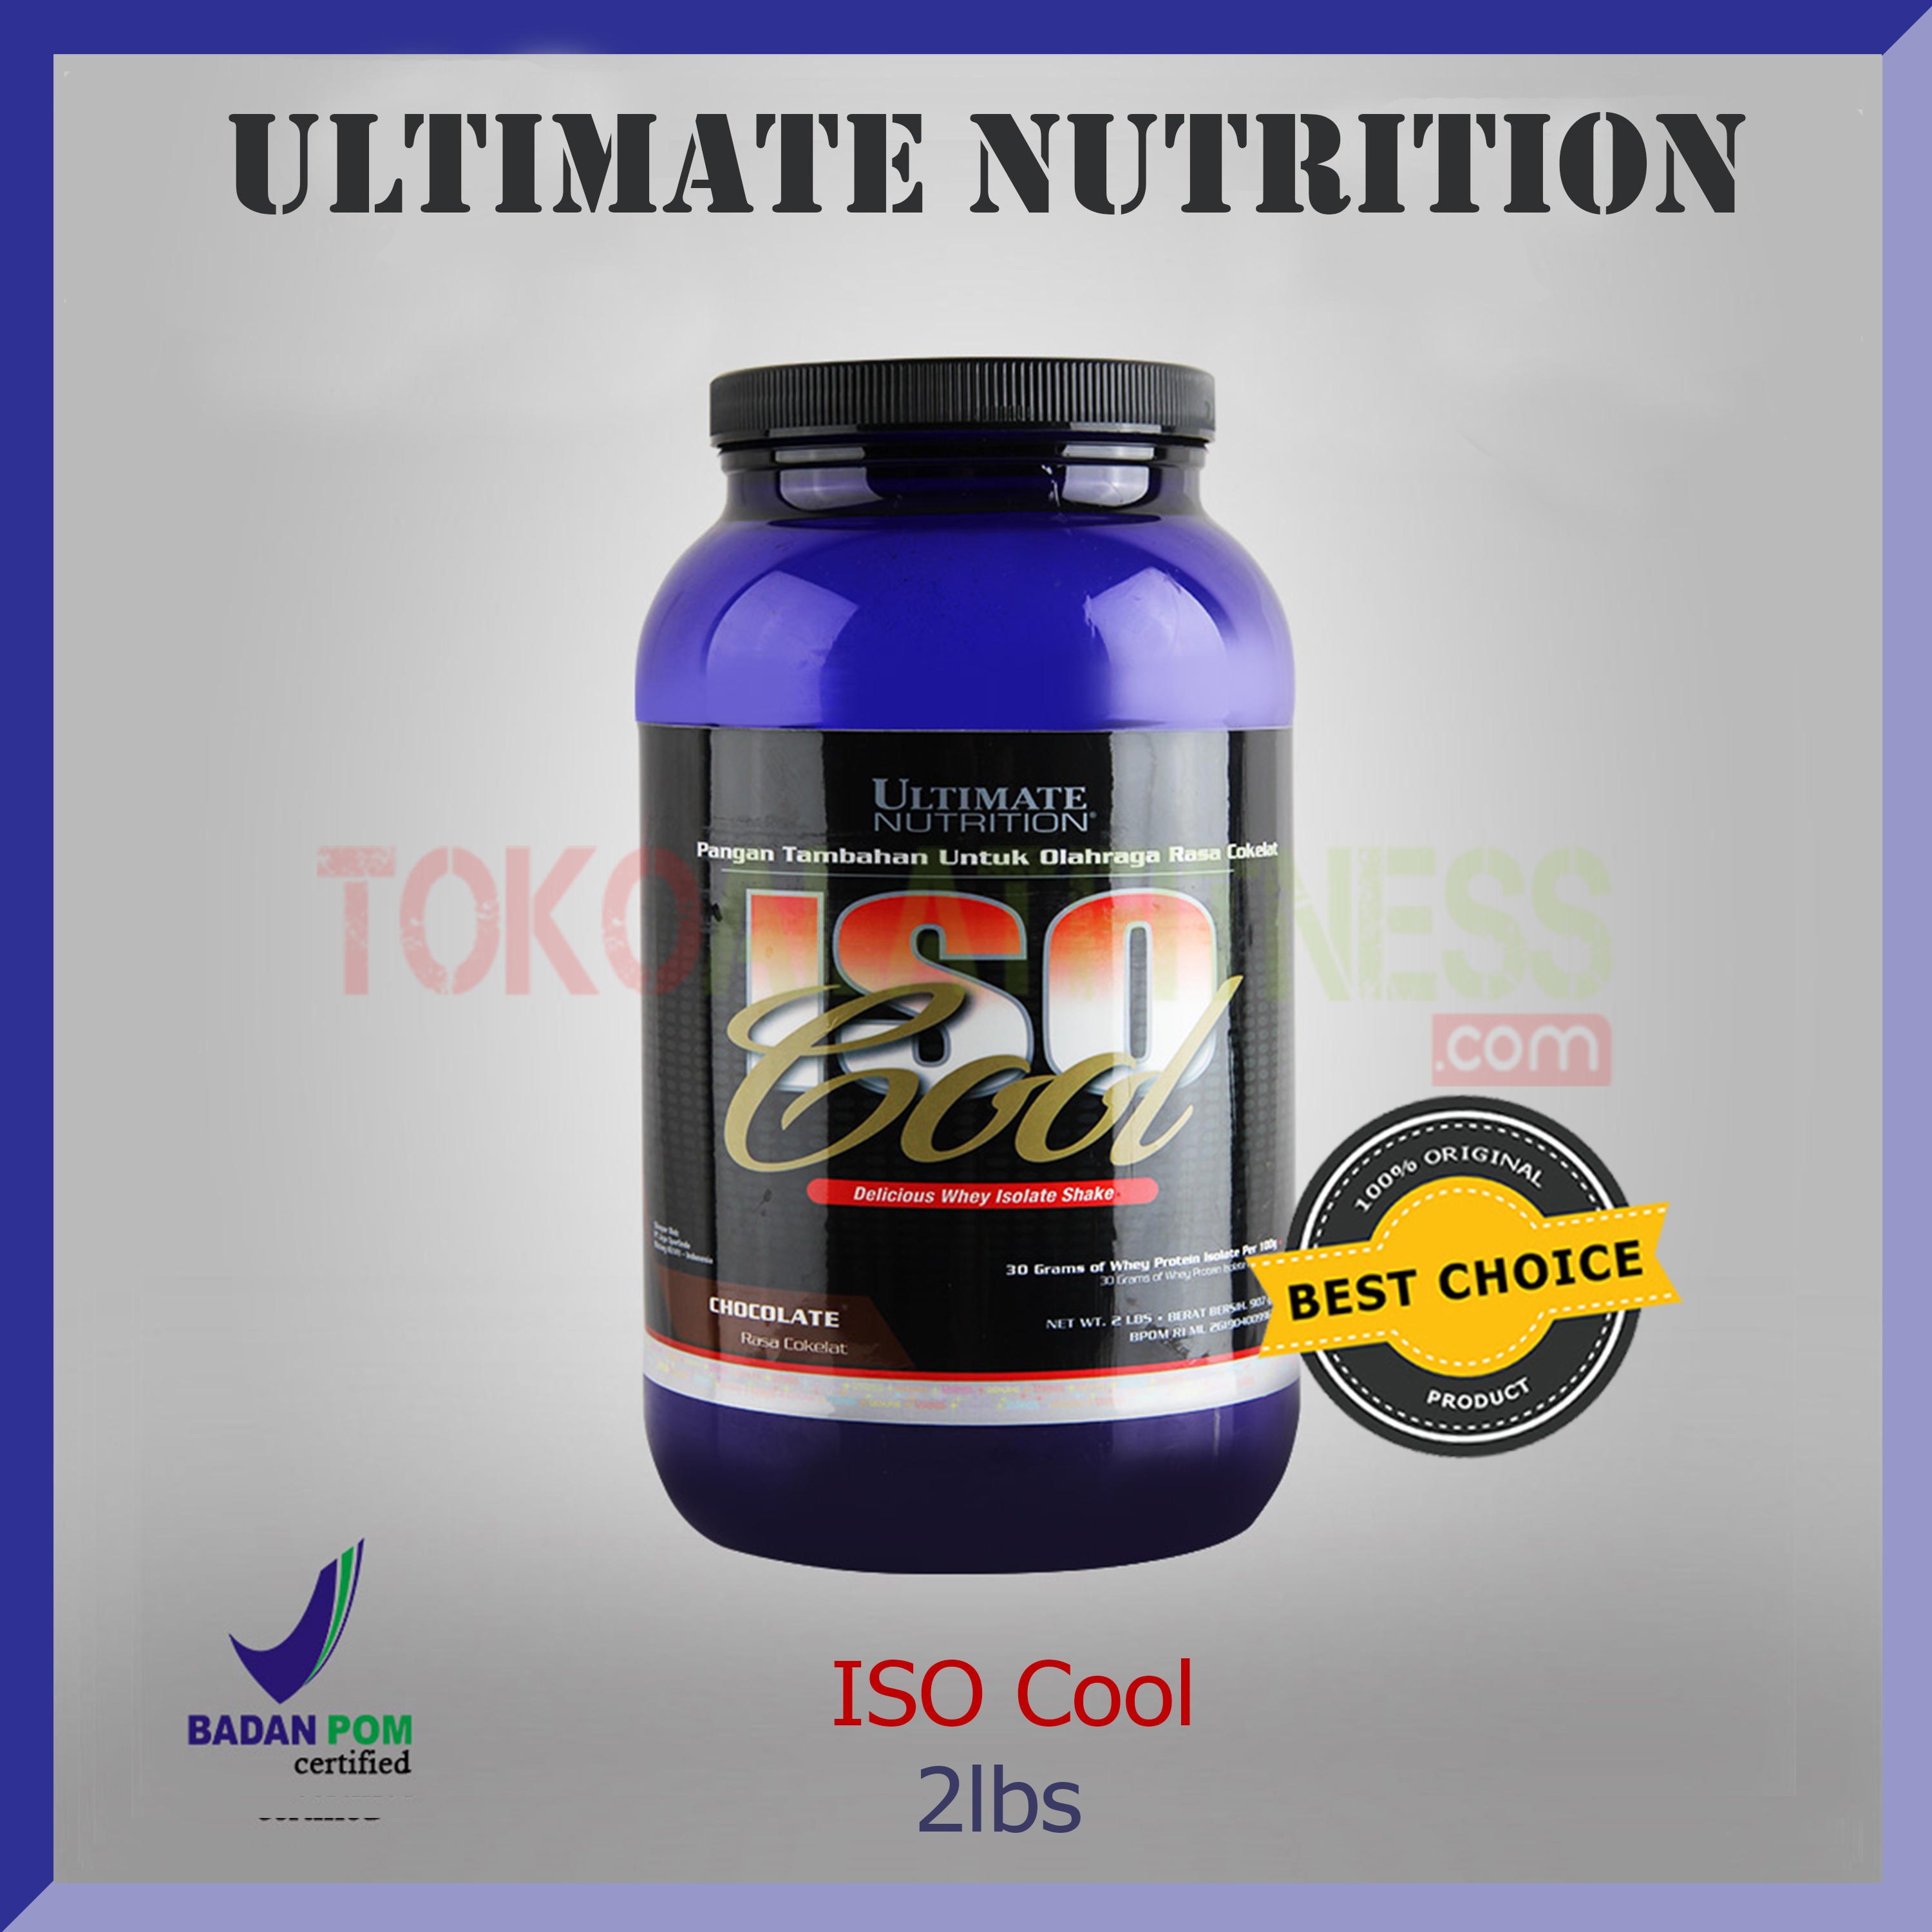 ULTIMATE NUTRITION ISO Cool 2lbs choco - Iso Cool 2Lbs